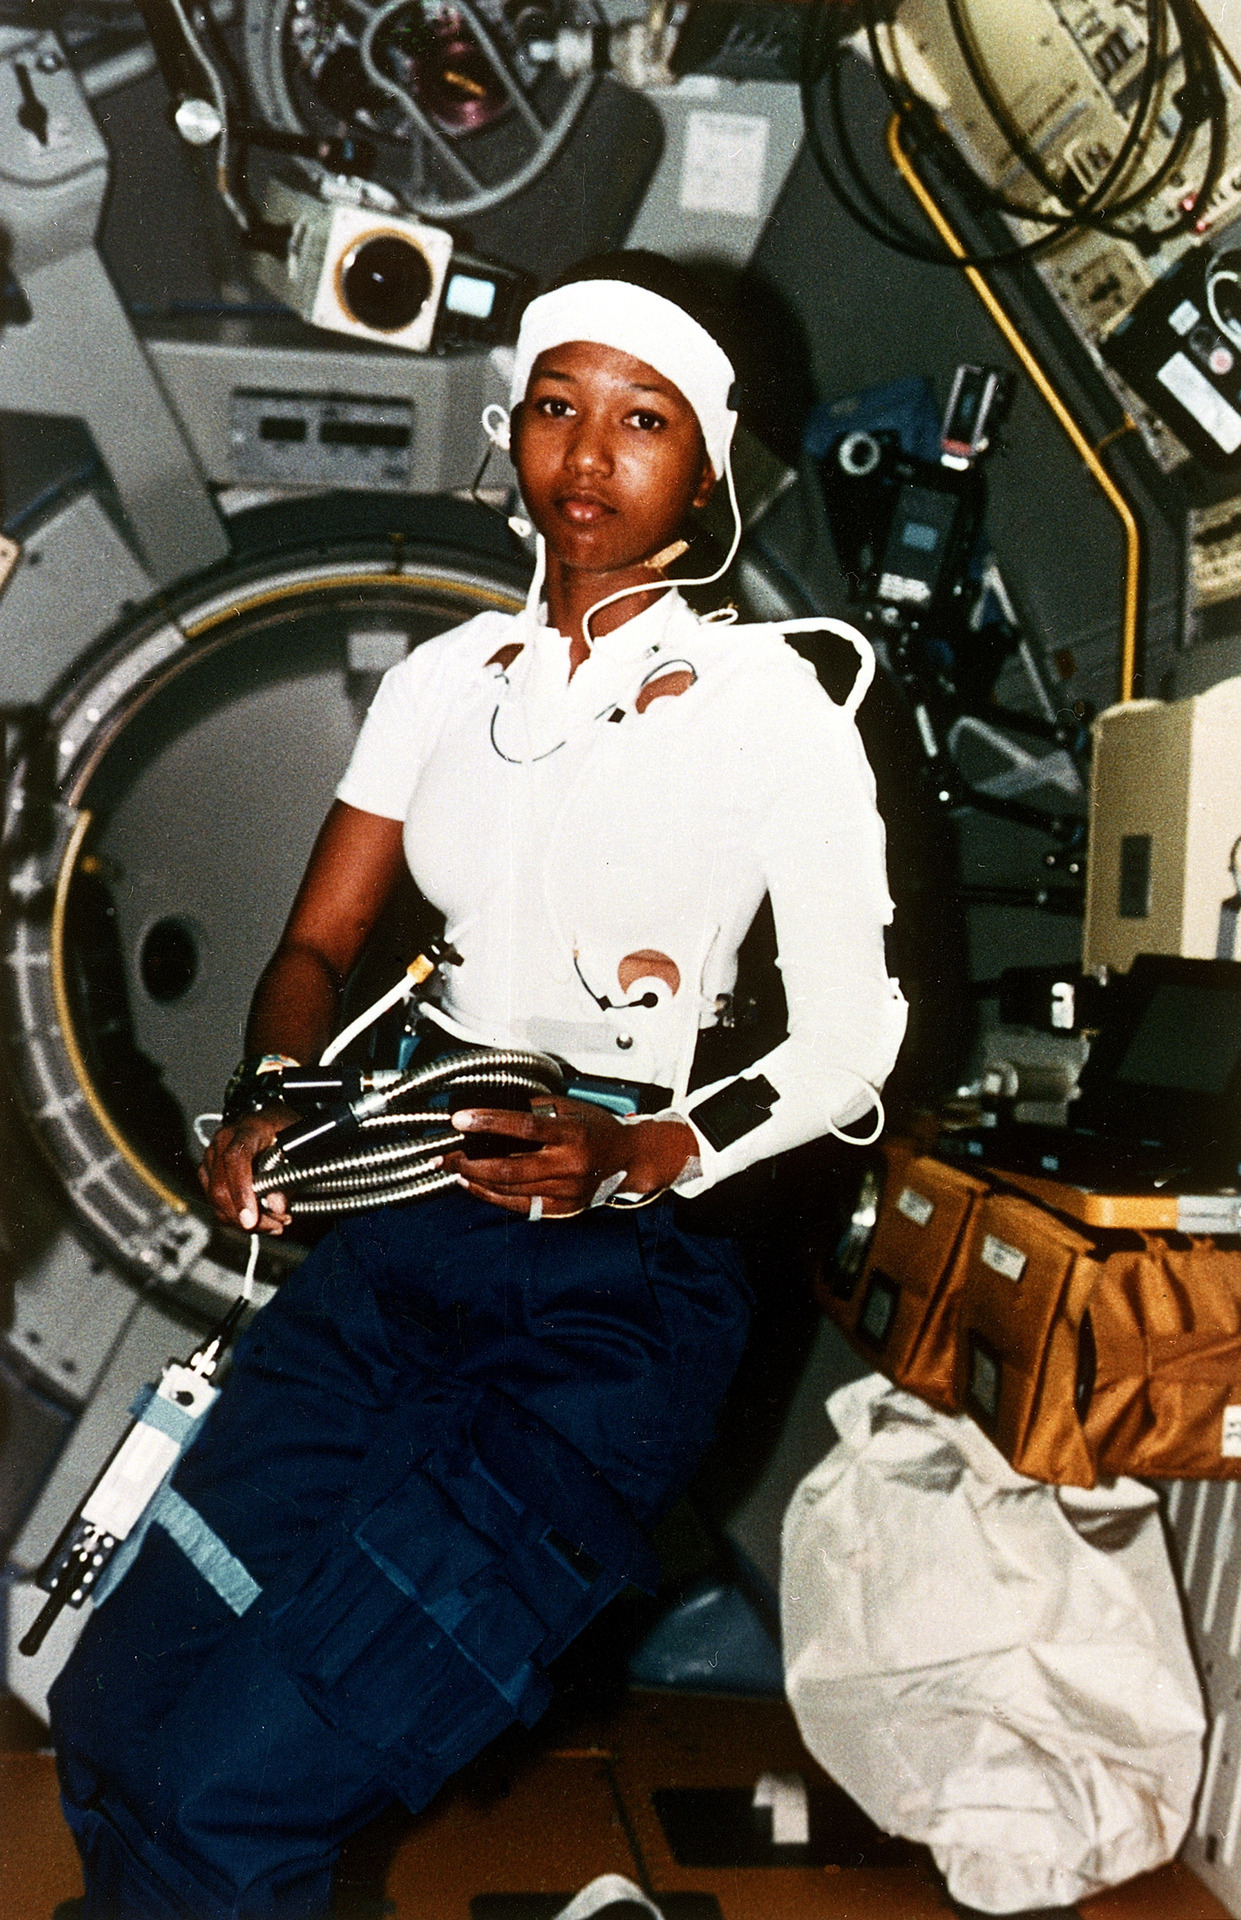 Mae Jemison Became 1st Black Woman To Fly In To Space On This week In 1992 On September 12, 1999, Jemison fulfilled a lifelong dream she held ever since she was a small girl in Chicago by becoming the first African-American woman to fly in to space. Graduating in 1977 with a dual degree in chemical engineering and African-American Studies, Jemison faced racism from professors as a Black woman taking up engineering.  Jemison later obtained a Doctor of Medicine in 1981 from Cornell University and travelled to developing countries to provide primary care.